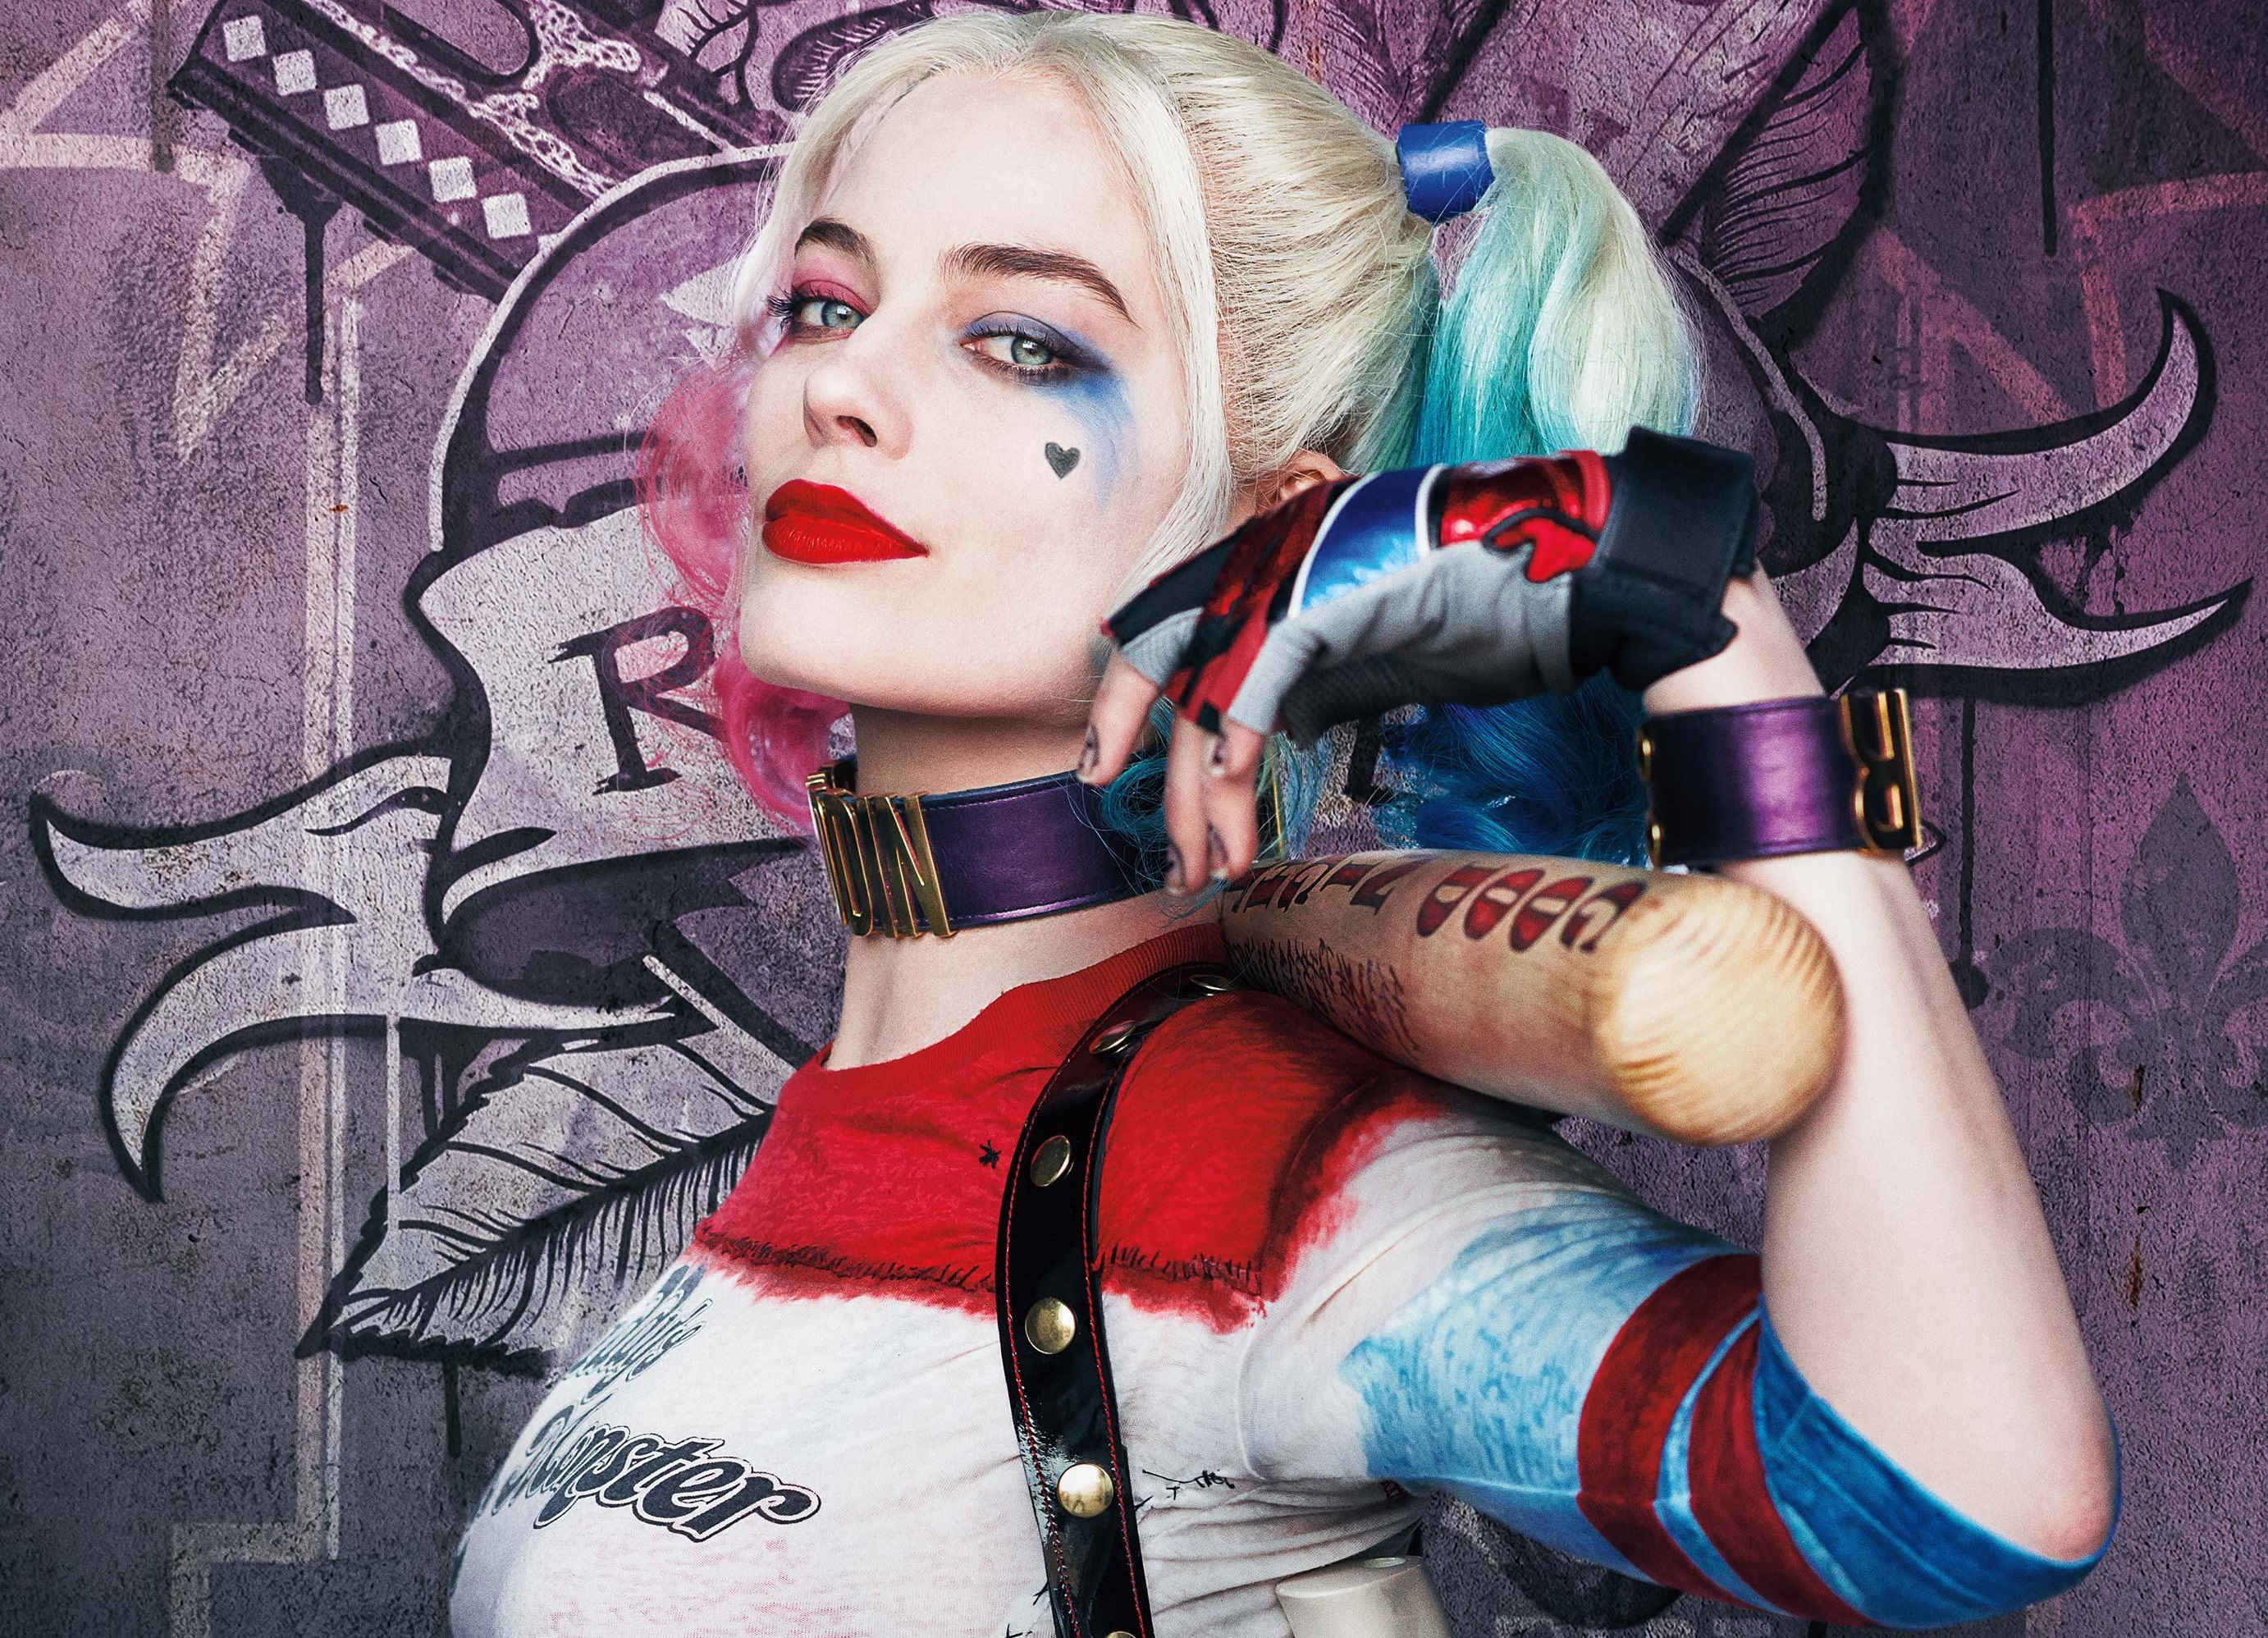 334 Harley Quinn HD Wallpapers | Backgrounds - Wallpaper Abyss